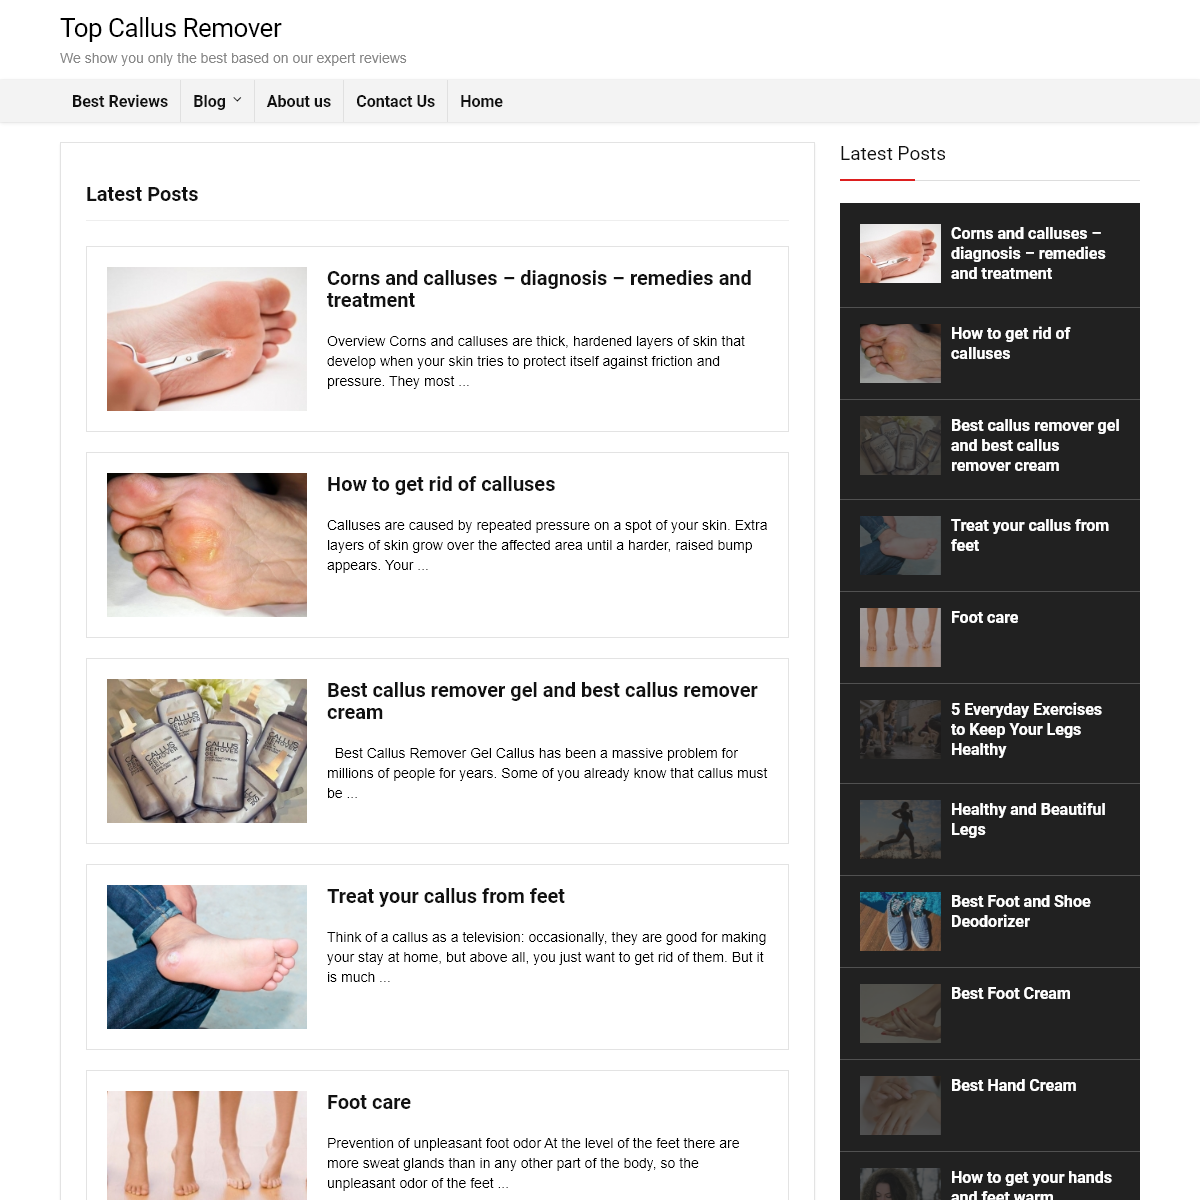 Top Callus Remover - We show you only the best based on our expert reviews